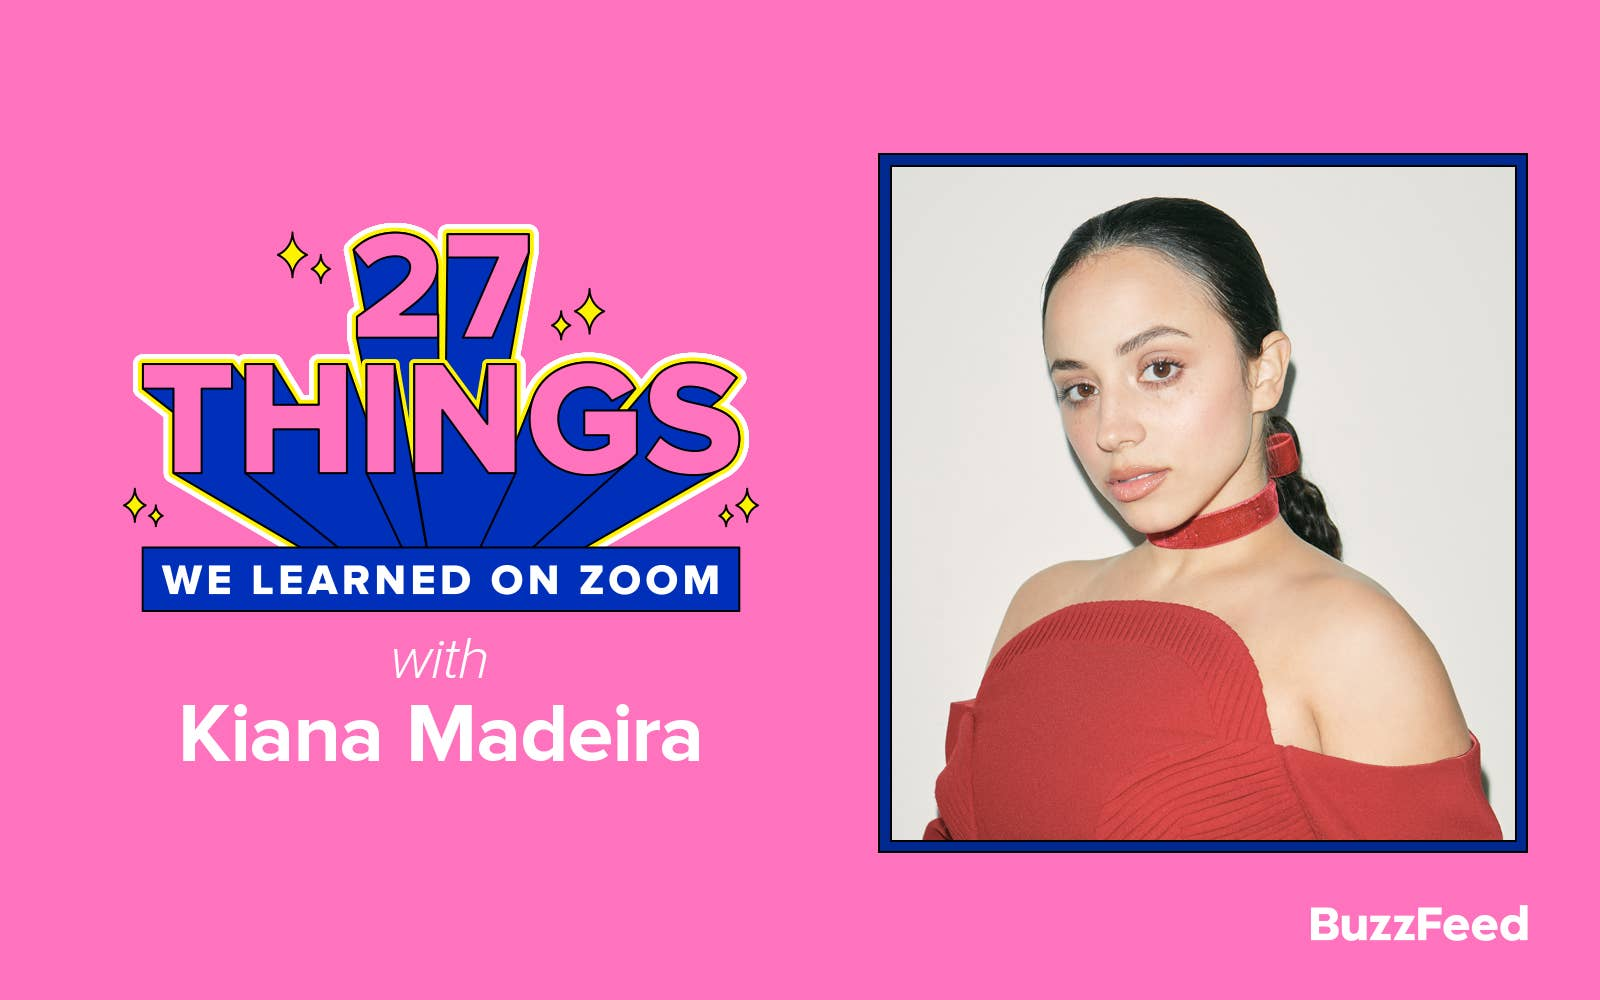 Header that says 27 Things We Learned on Zoom with Kiana Madeira